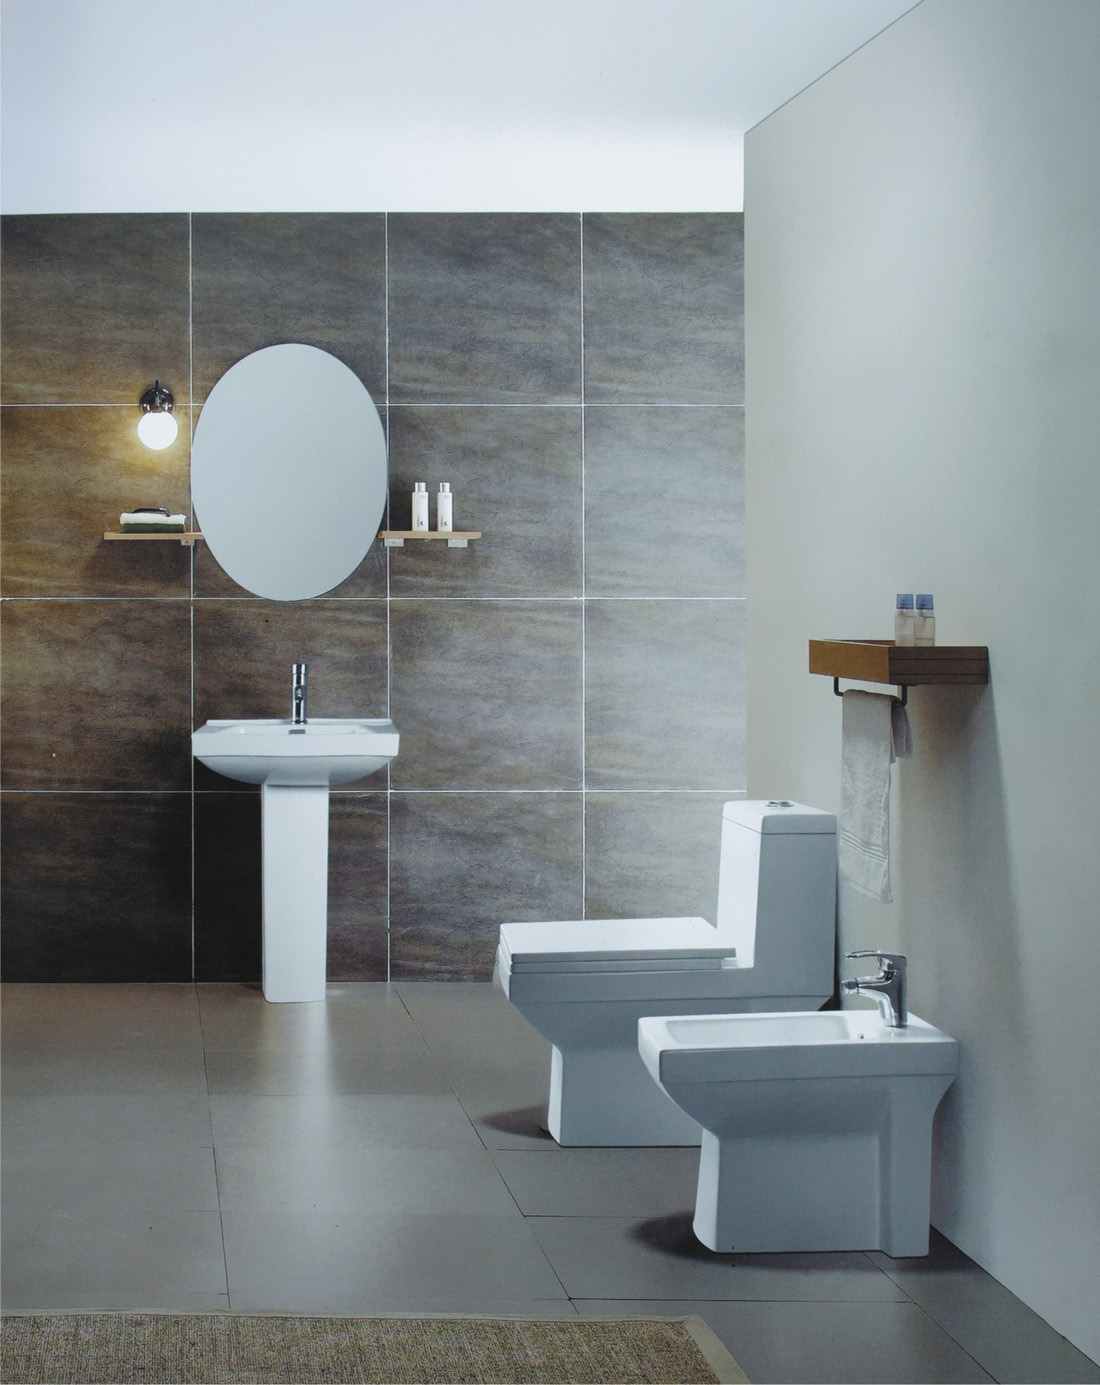 Bathroom Tiles Johnson India With Innovative Innovation In Canada